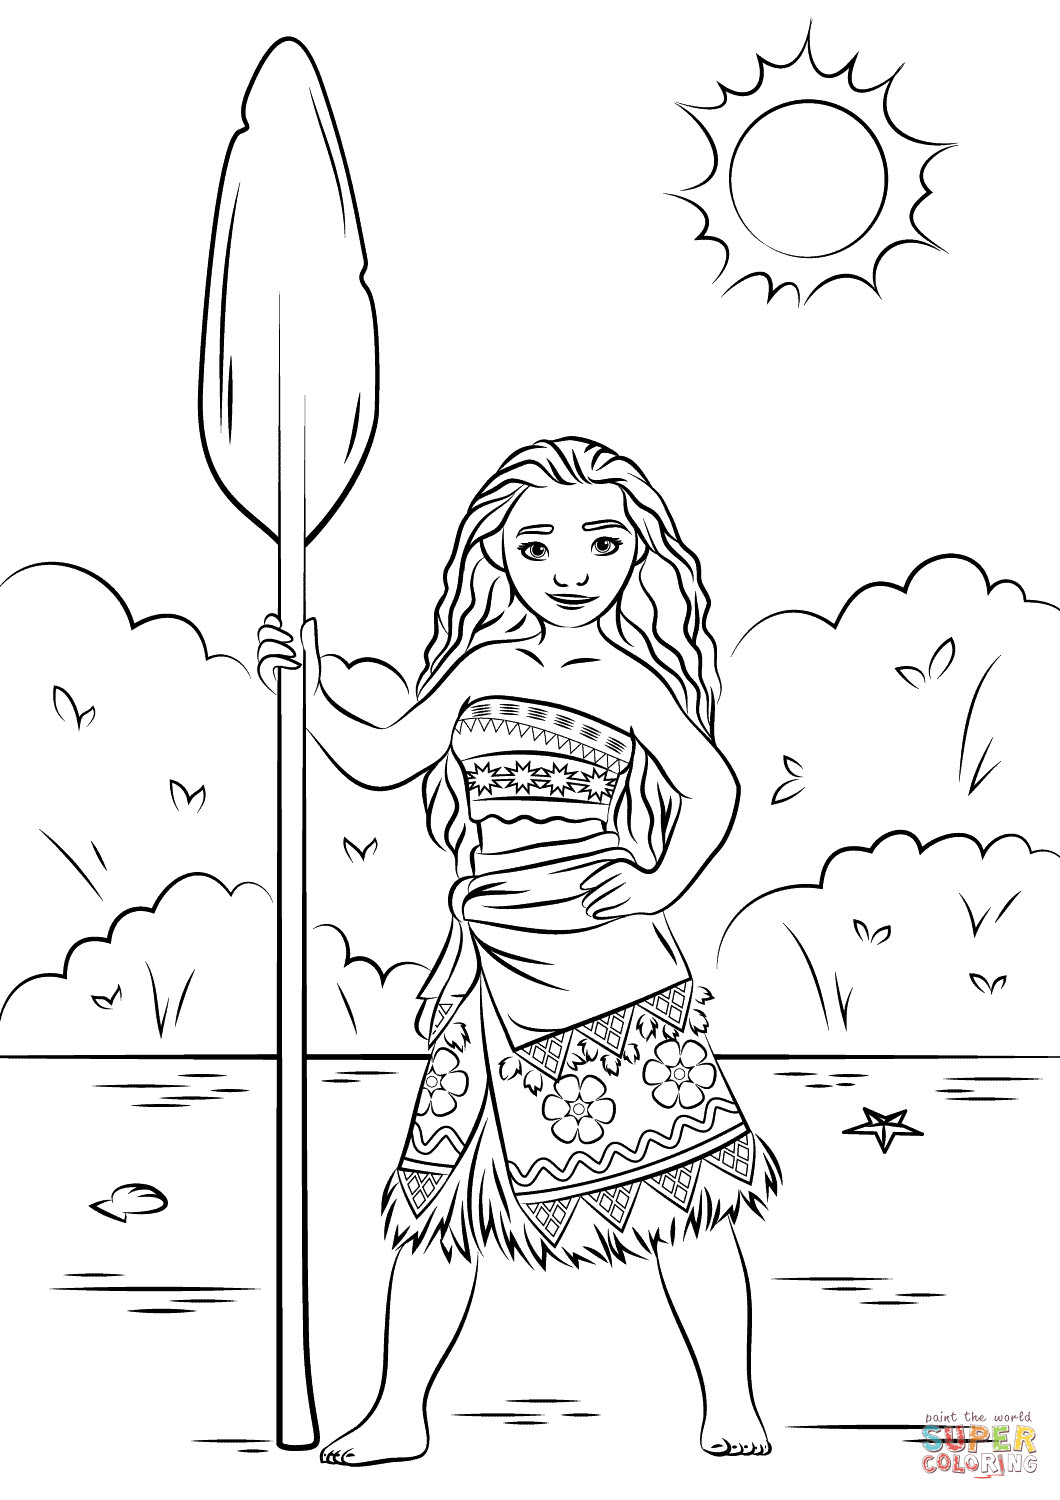 Best ideas about Moana Free Coloring Sheets . Save or Pin Princess Moana coloring page Now.